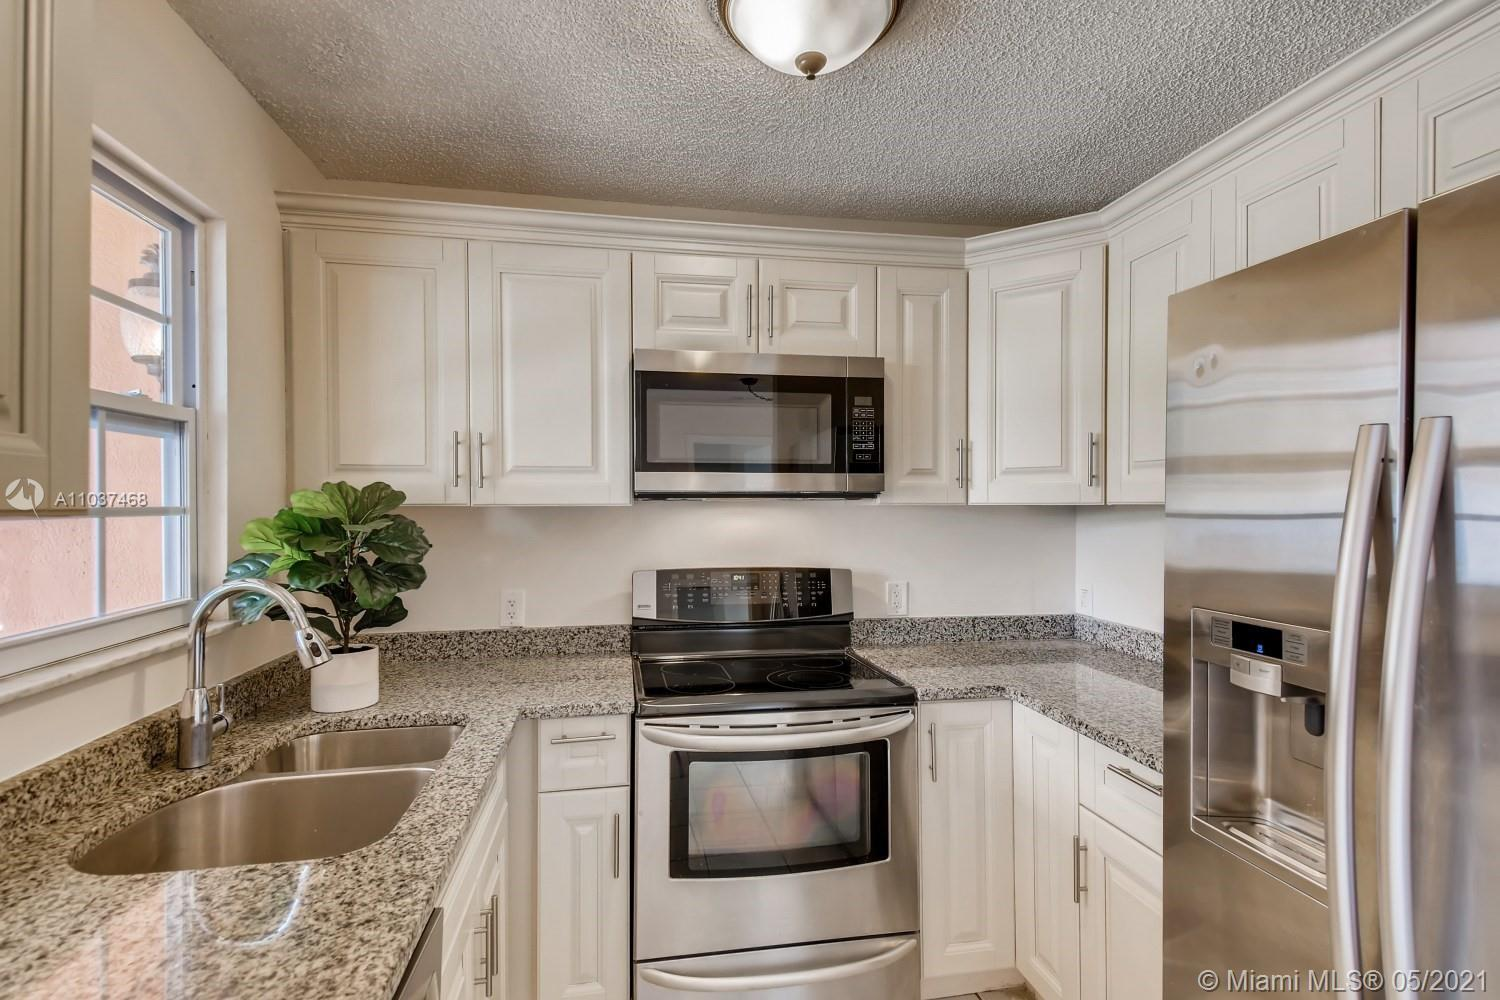 Freshly painted, clean, quiet and move in ready 3 bed/2 bath/1 car garage home with no HOA!!! Open f